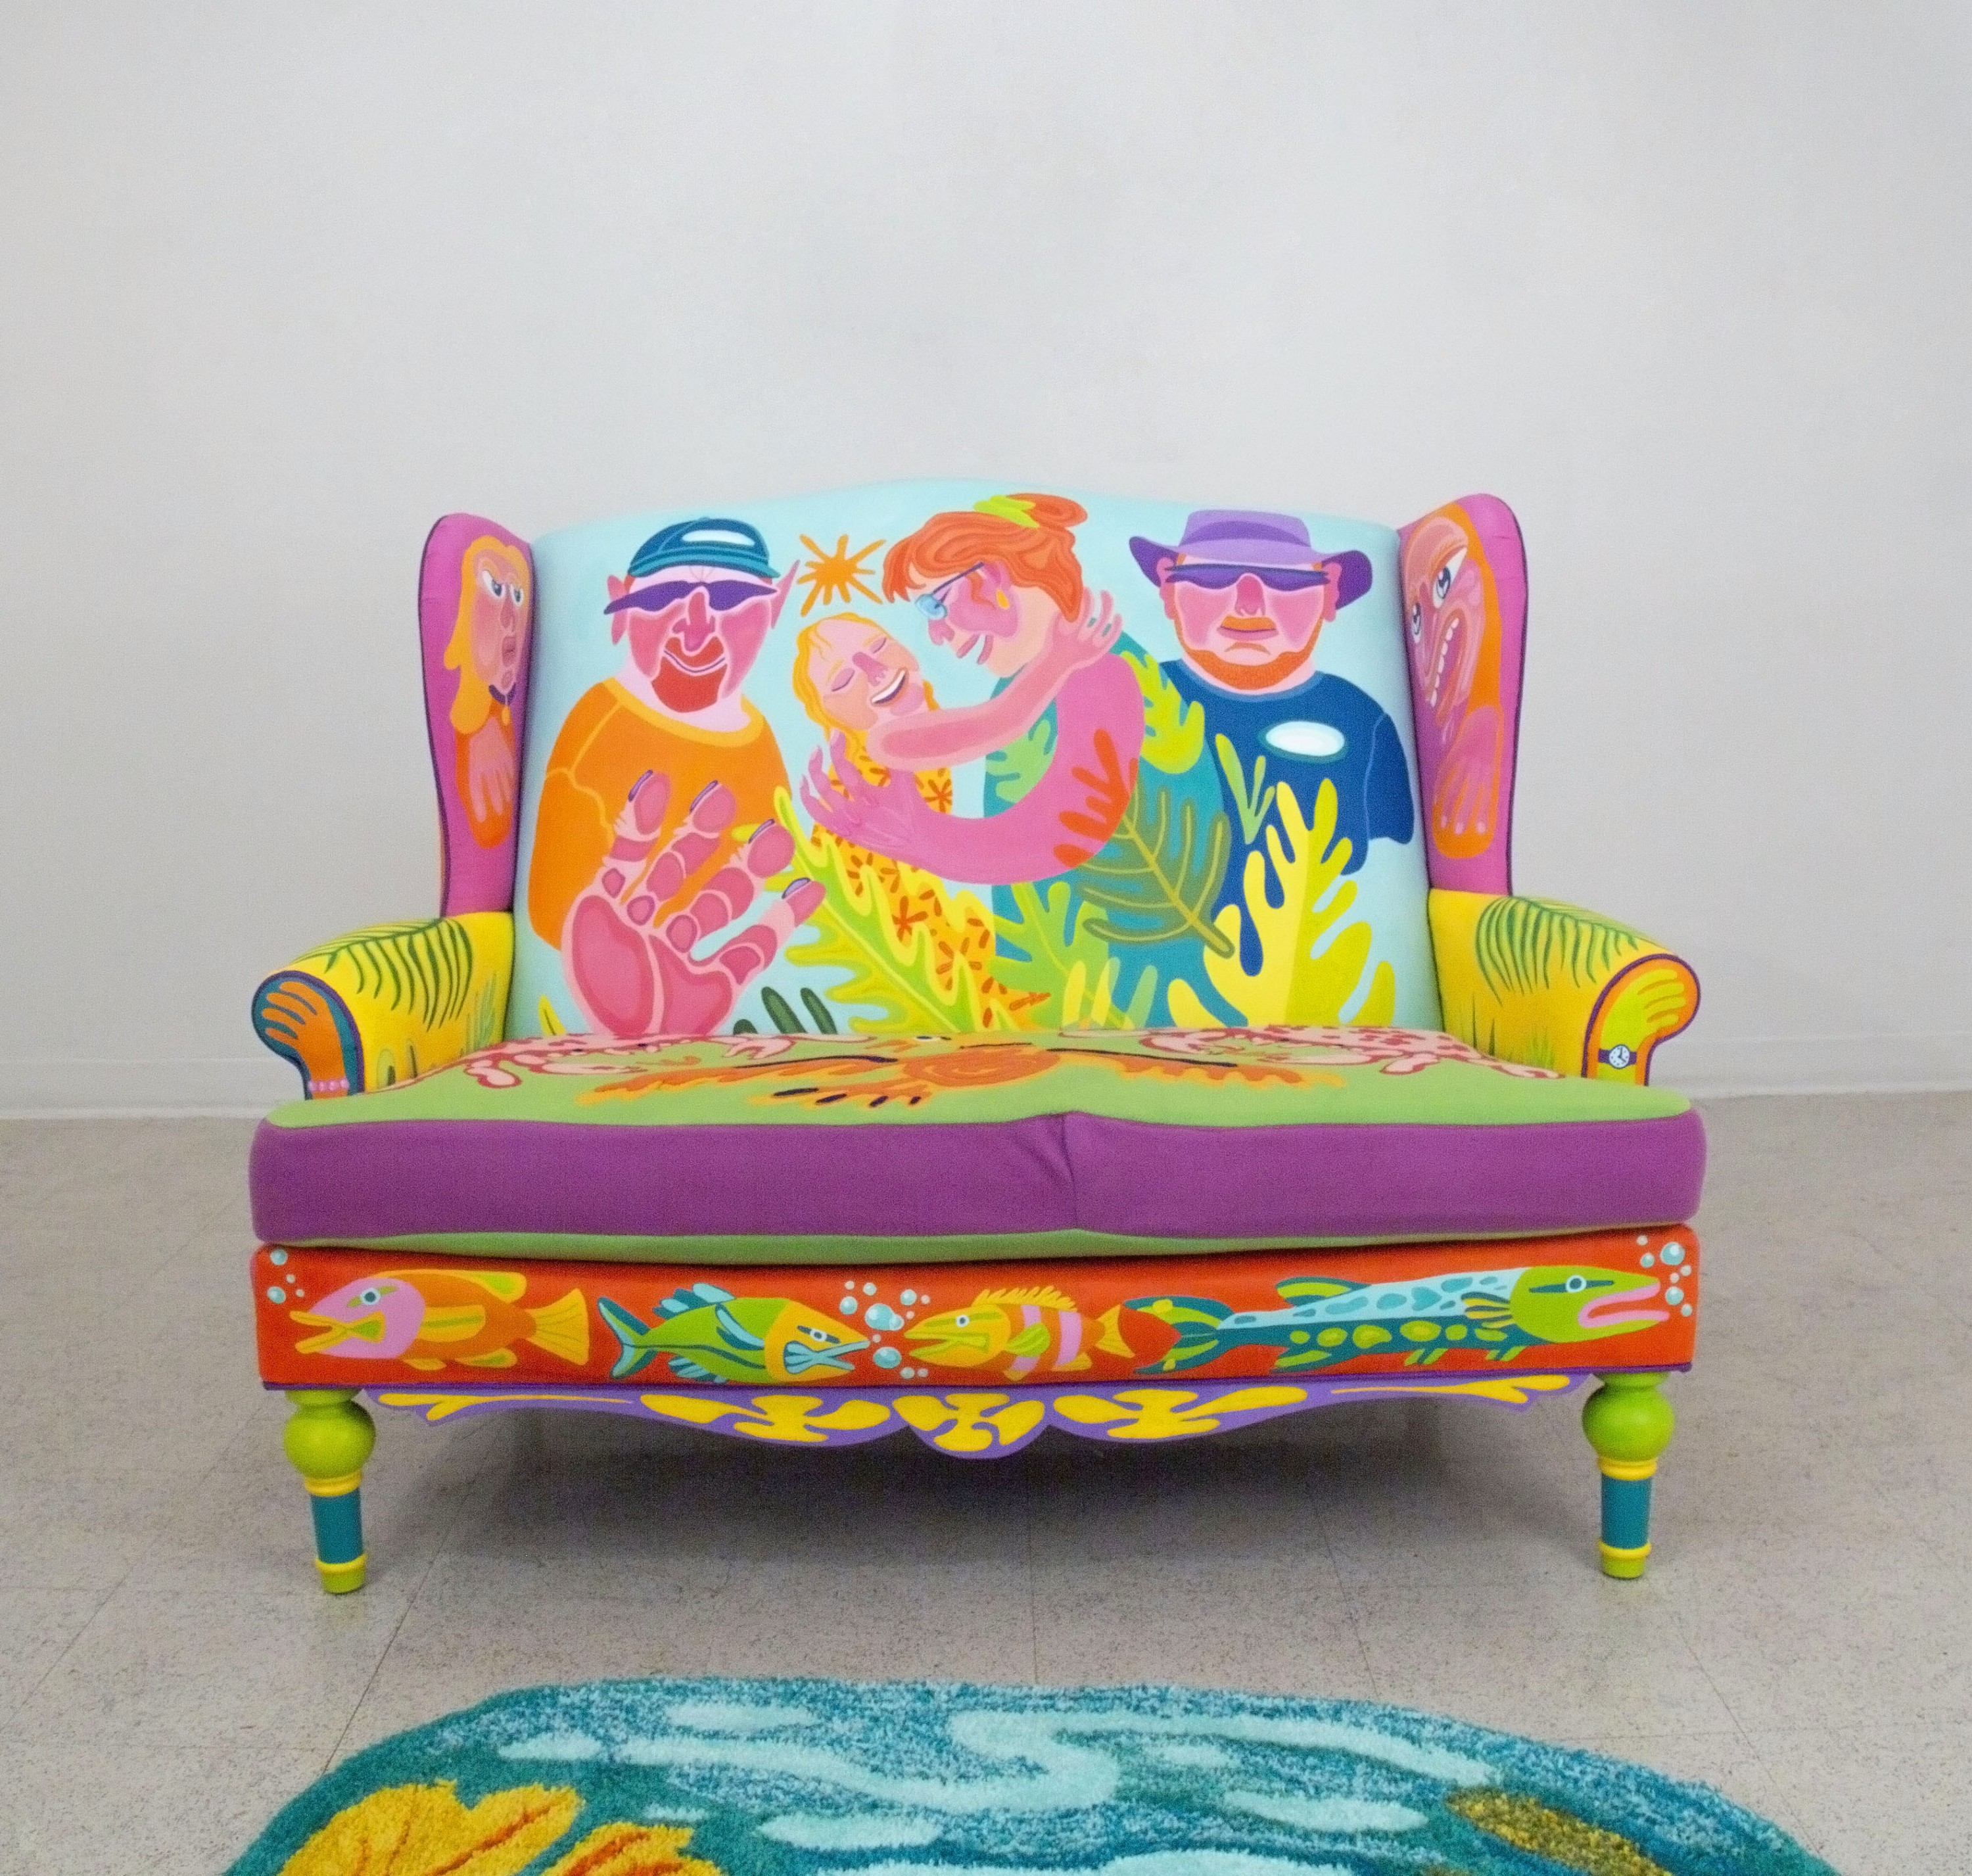 Painted couch with appliquéd cushion cover. Front - Family portrait among palm fronds, fish. Side view - Large flowers, mangrove roots, palmetto leaf. Back -Peacock bass being held among swaying palm trees. Another view shows the couch with two models wea